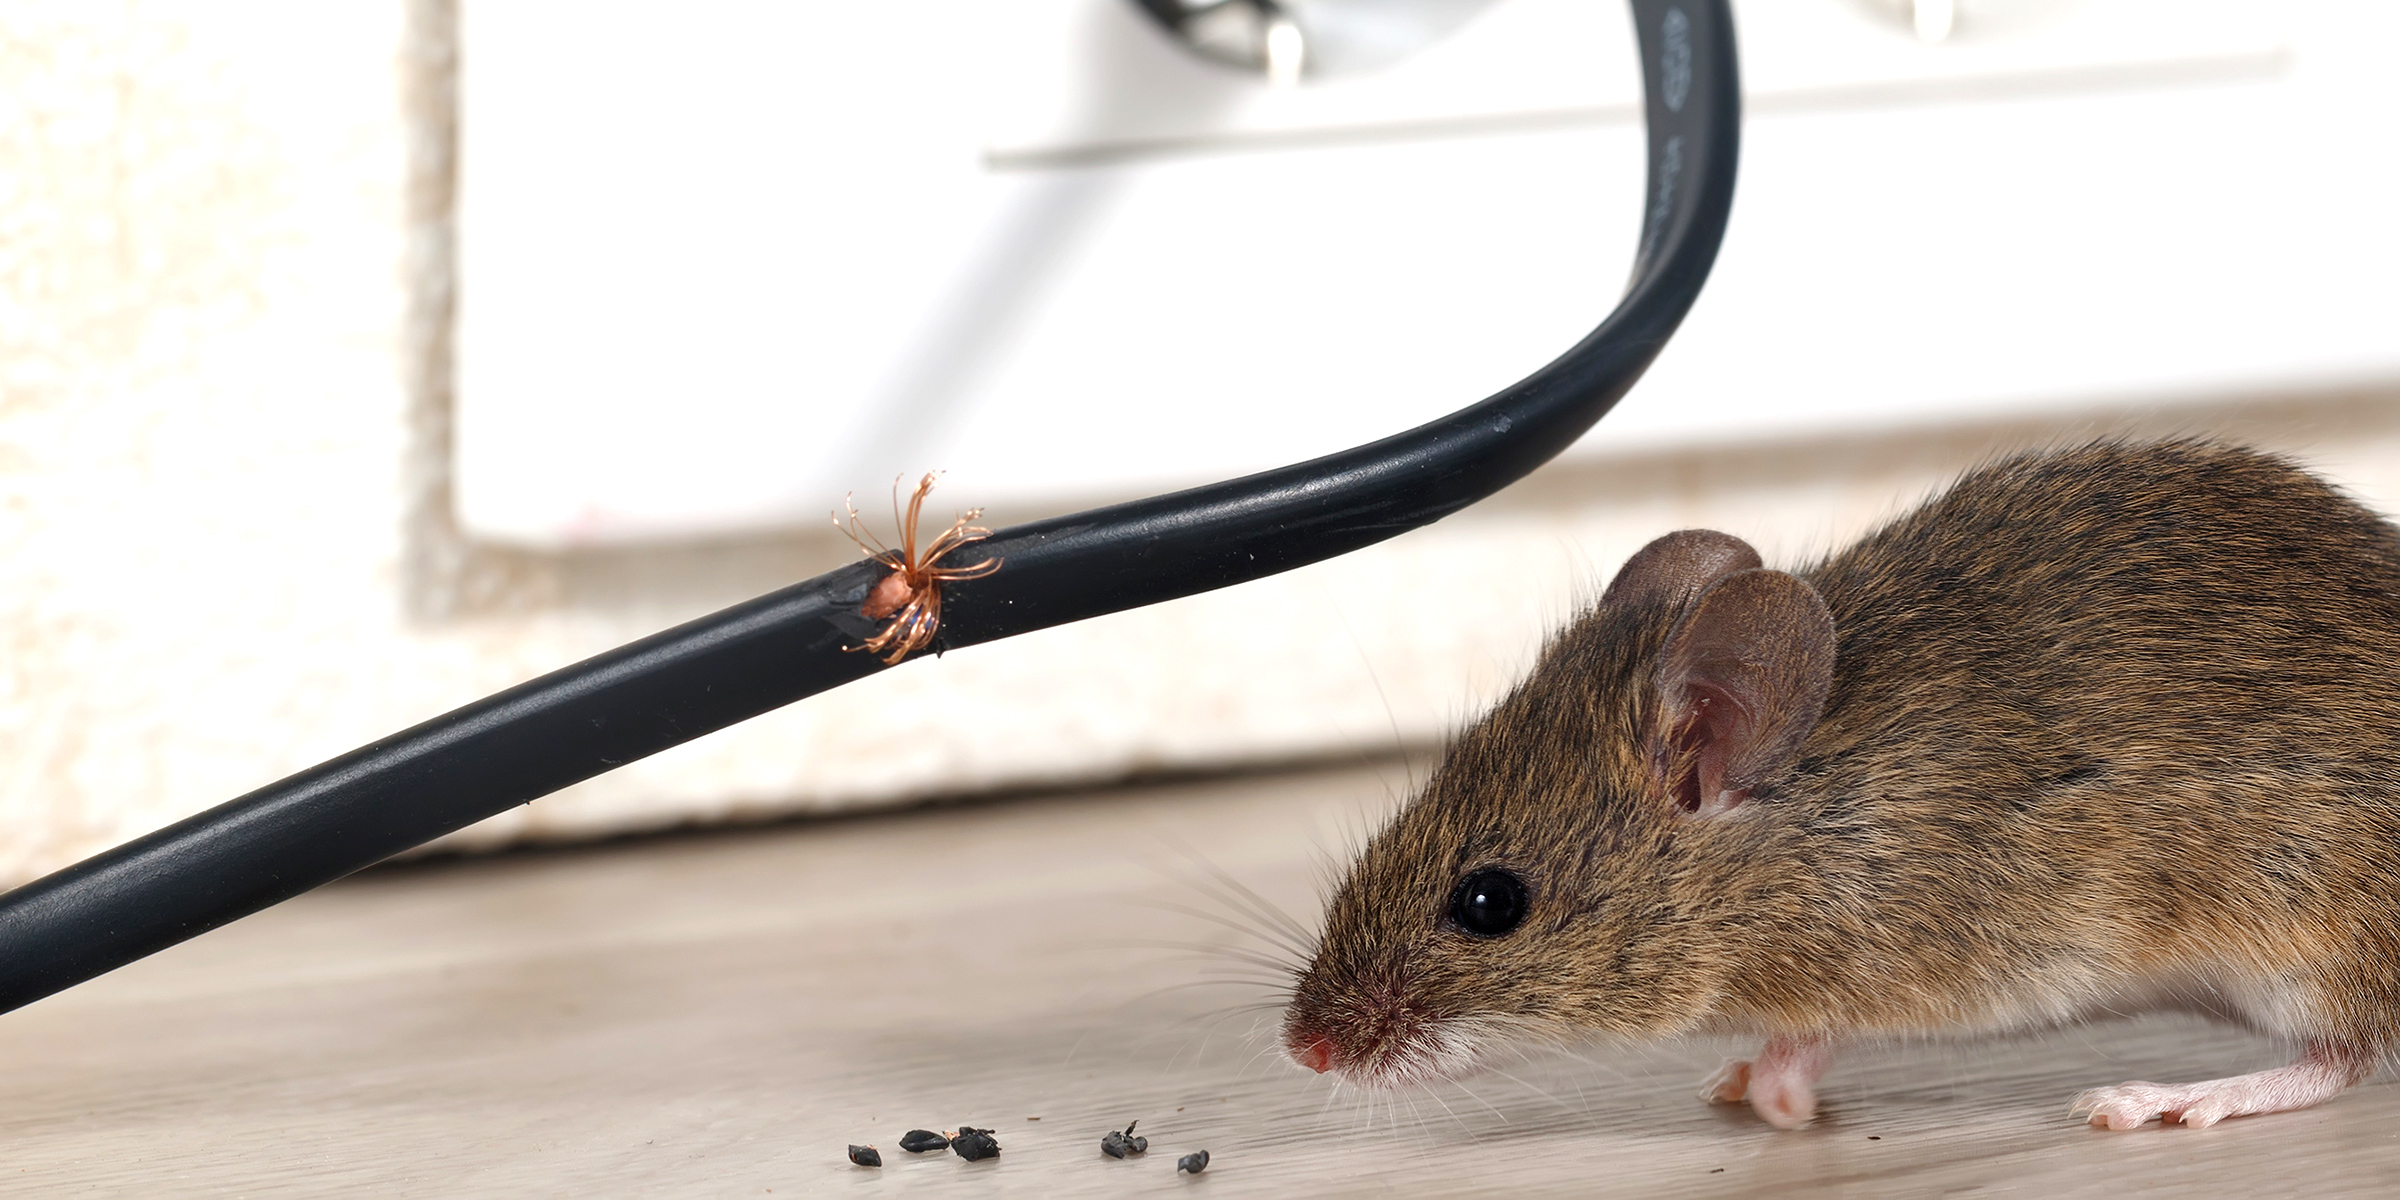 Effective tips to get rid of mice in cabinets